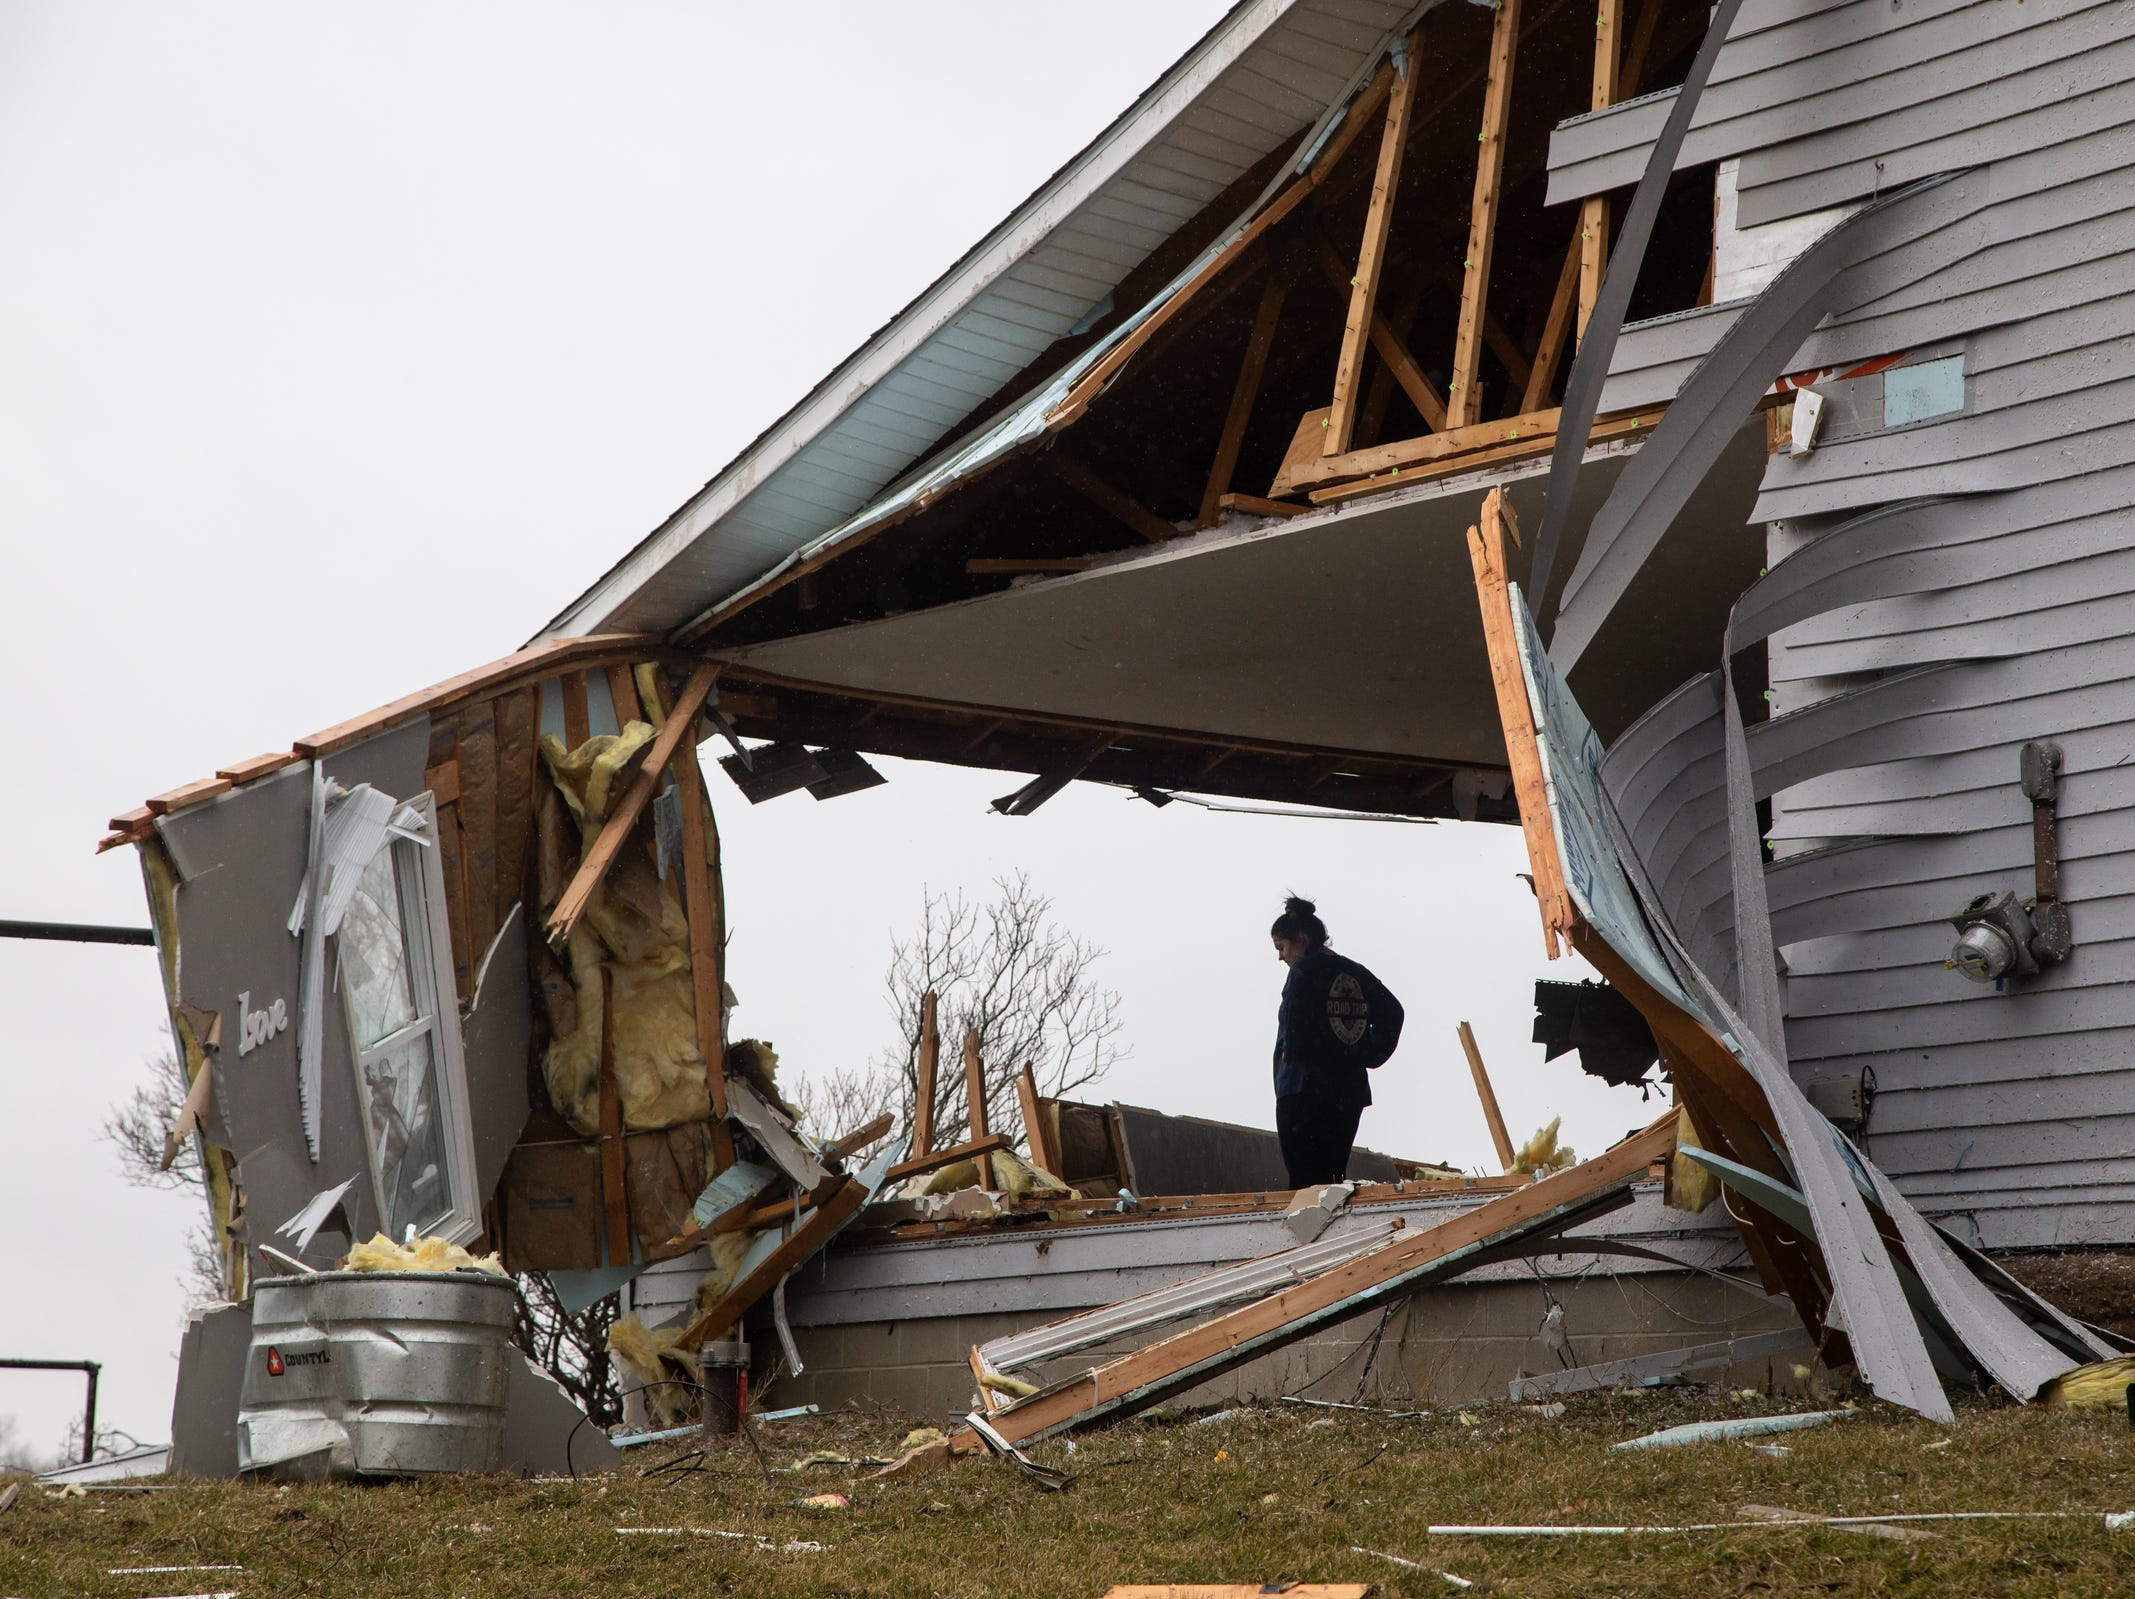 Mackenzie Weaver helps clear items from the living room area of her mother's home in Bancroft on Friday, March 15, 2019